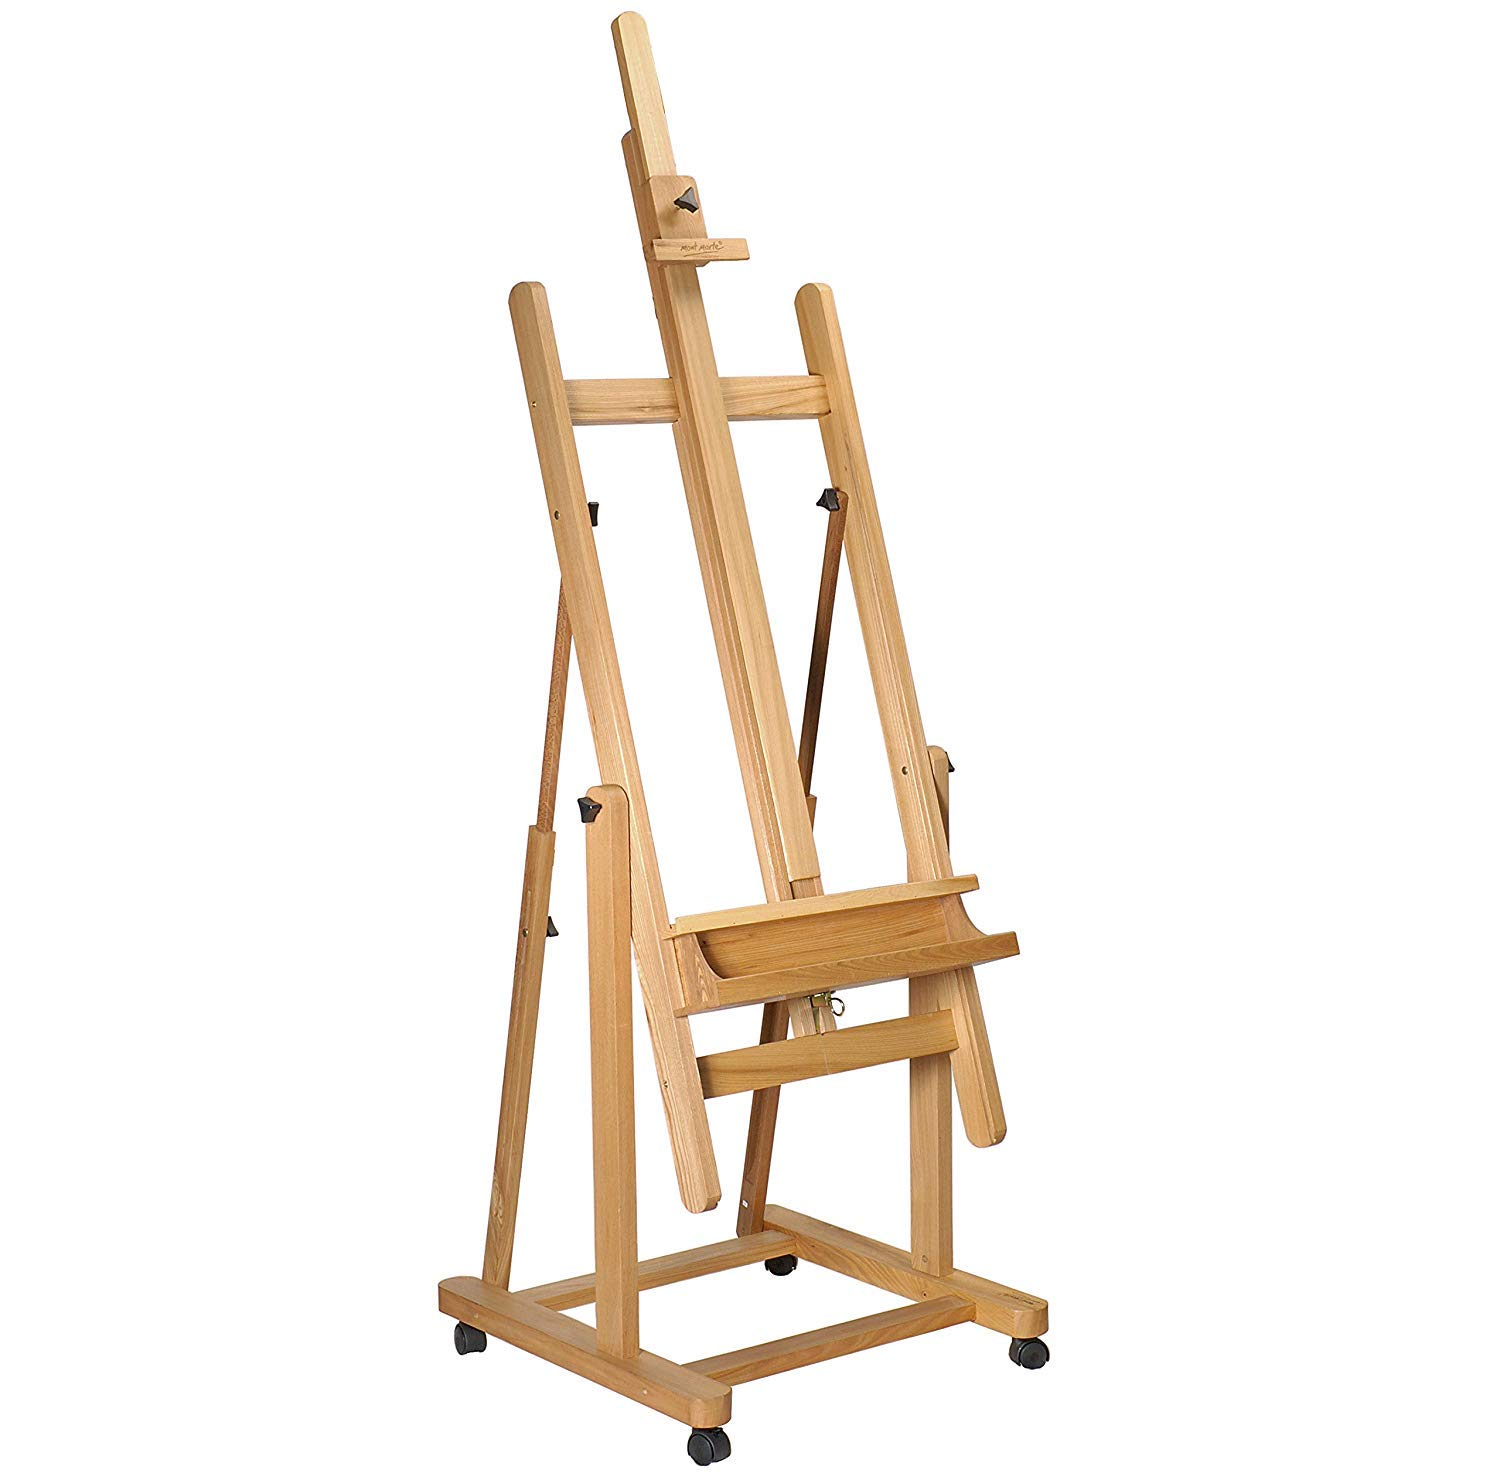 "Artist Easel 87.40"" (7.28ft) – Large Adjustable Wooden Studio Easel can hold 90"" of Canvas – Ideal for Painting Drawing Wedding Outdoor Sketching Beech Wood Display Exhibition (222cm) Kurtzy"